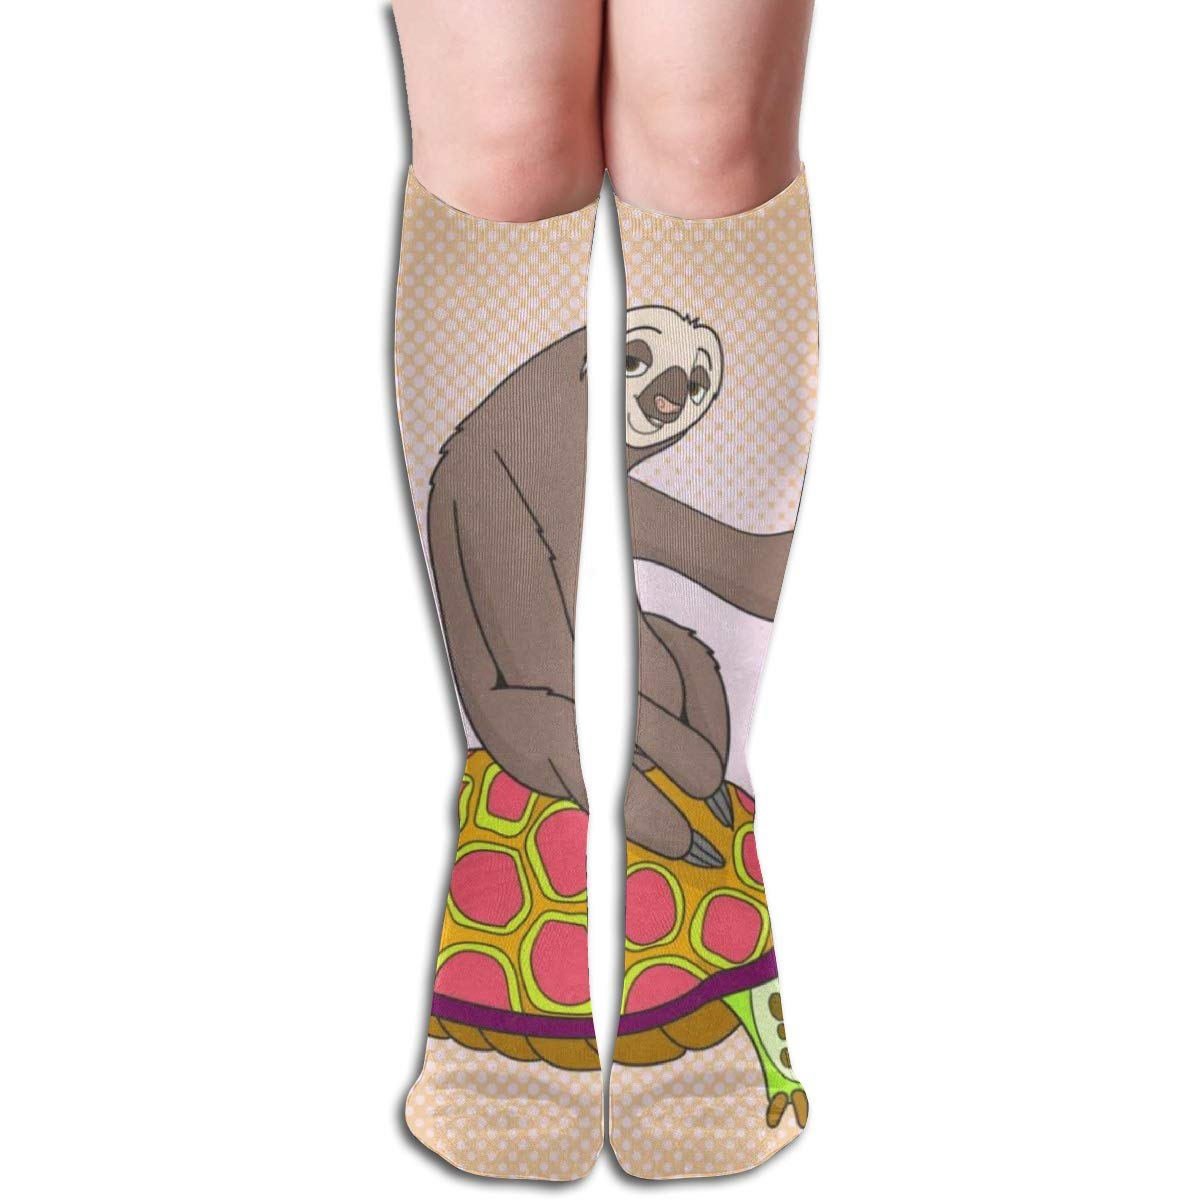 Stretch Stocking Funny Sloth Riding Turtle Soccer Socks Over The Calf Great For Running,Athletic,Travel